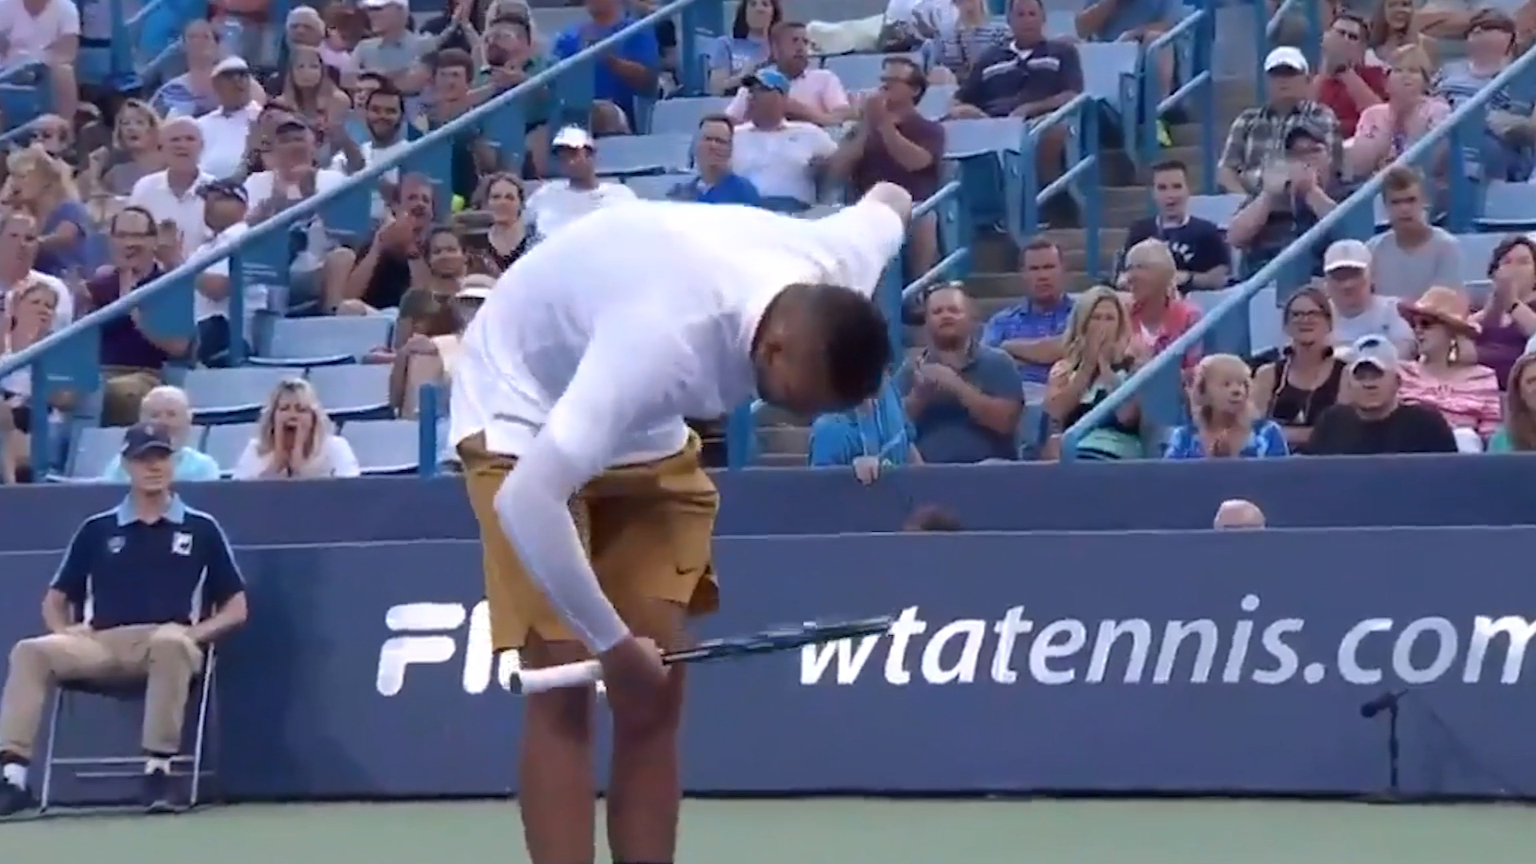 Kyrgios takes a bow after 'ridiculous' shot